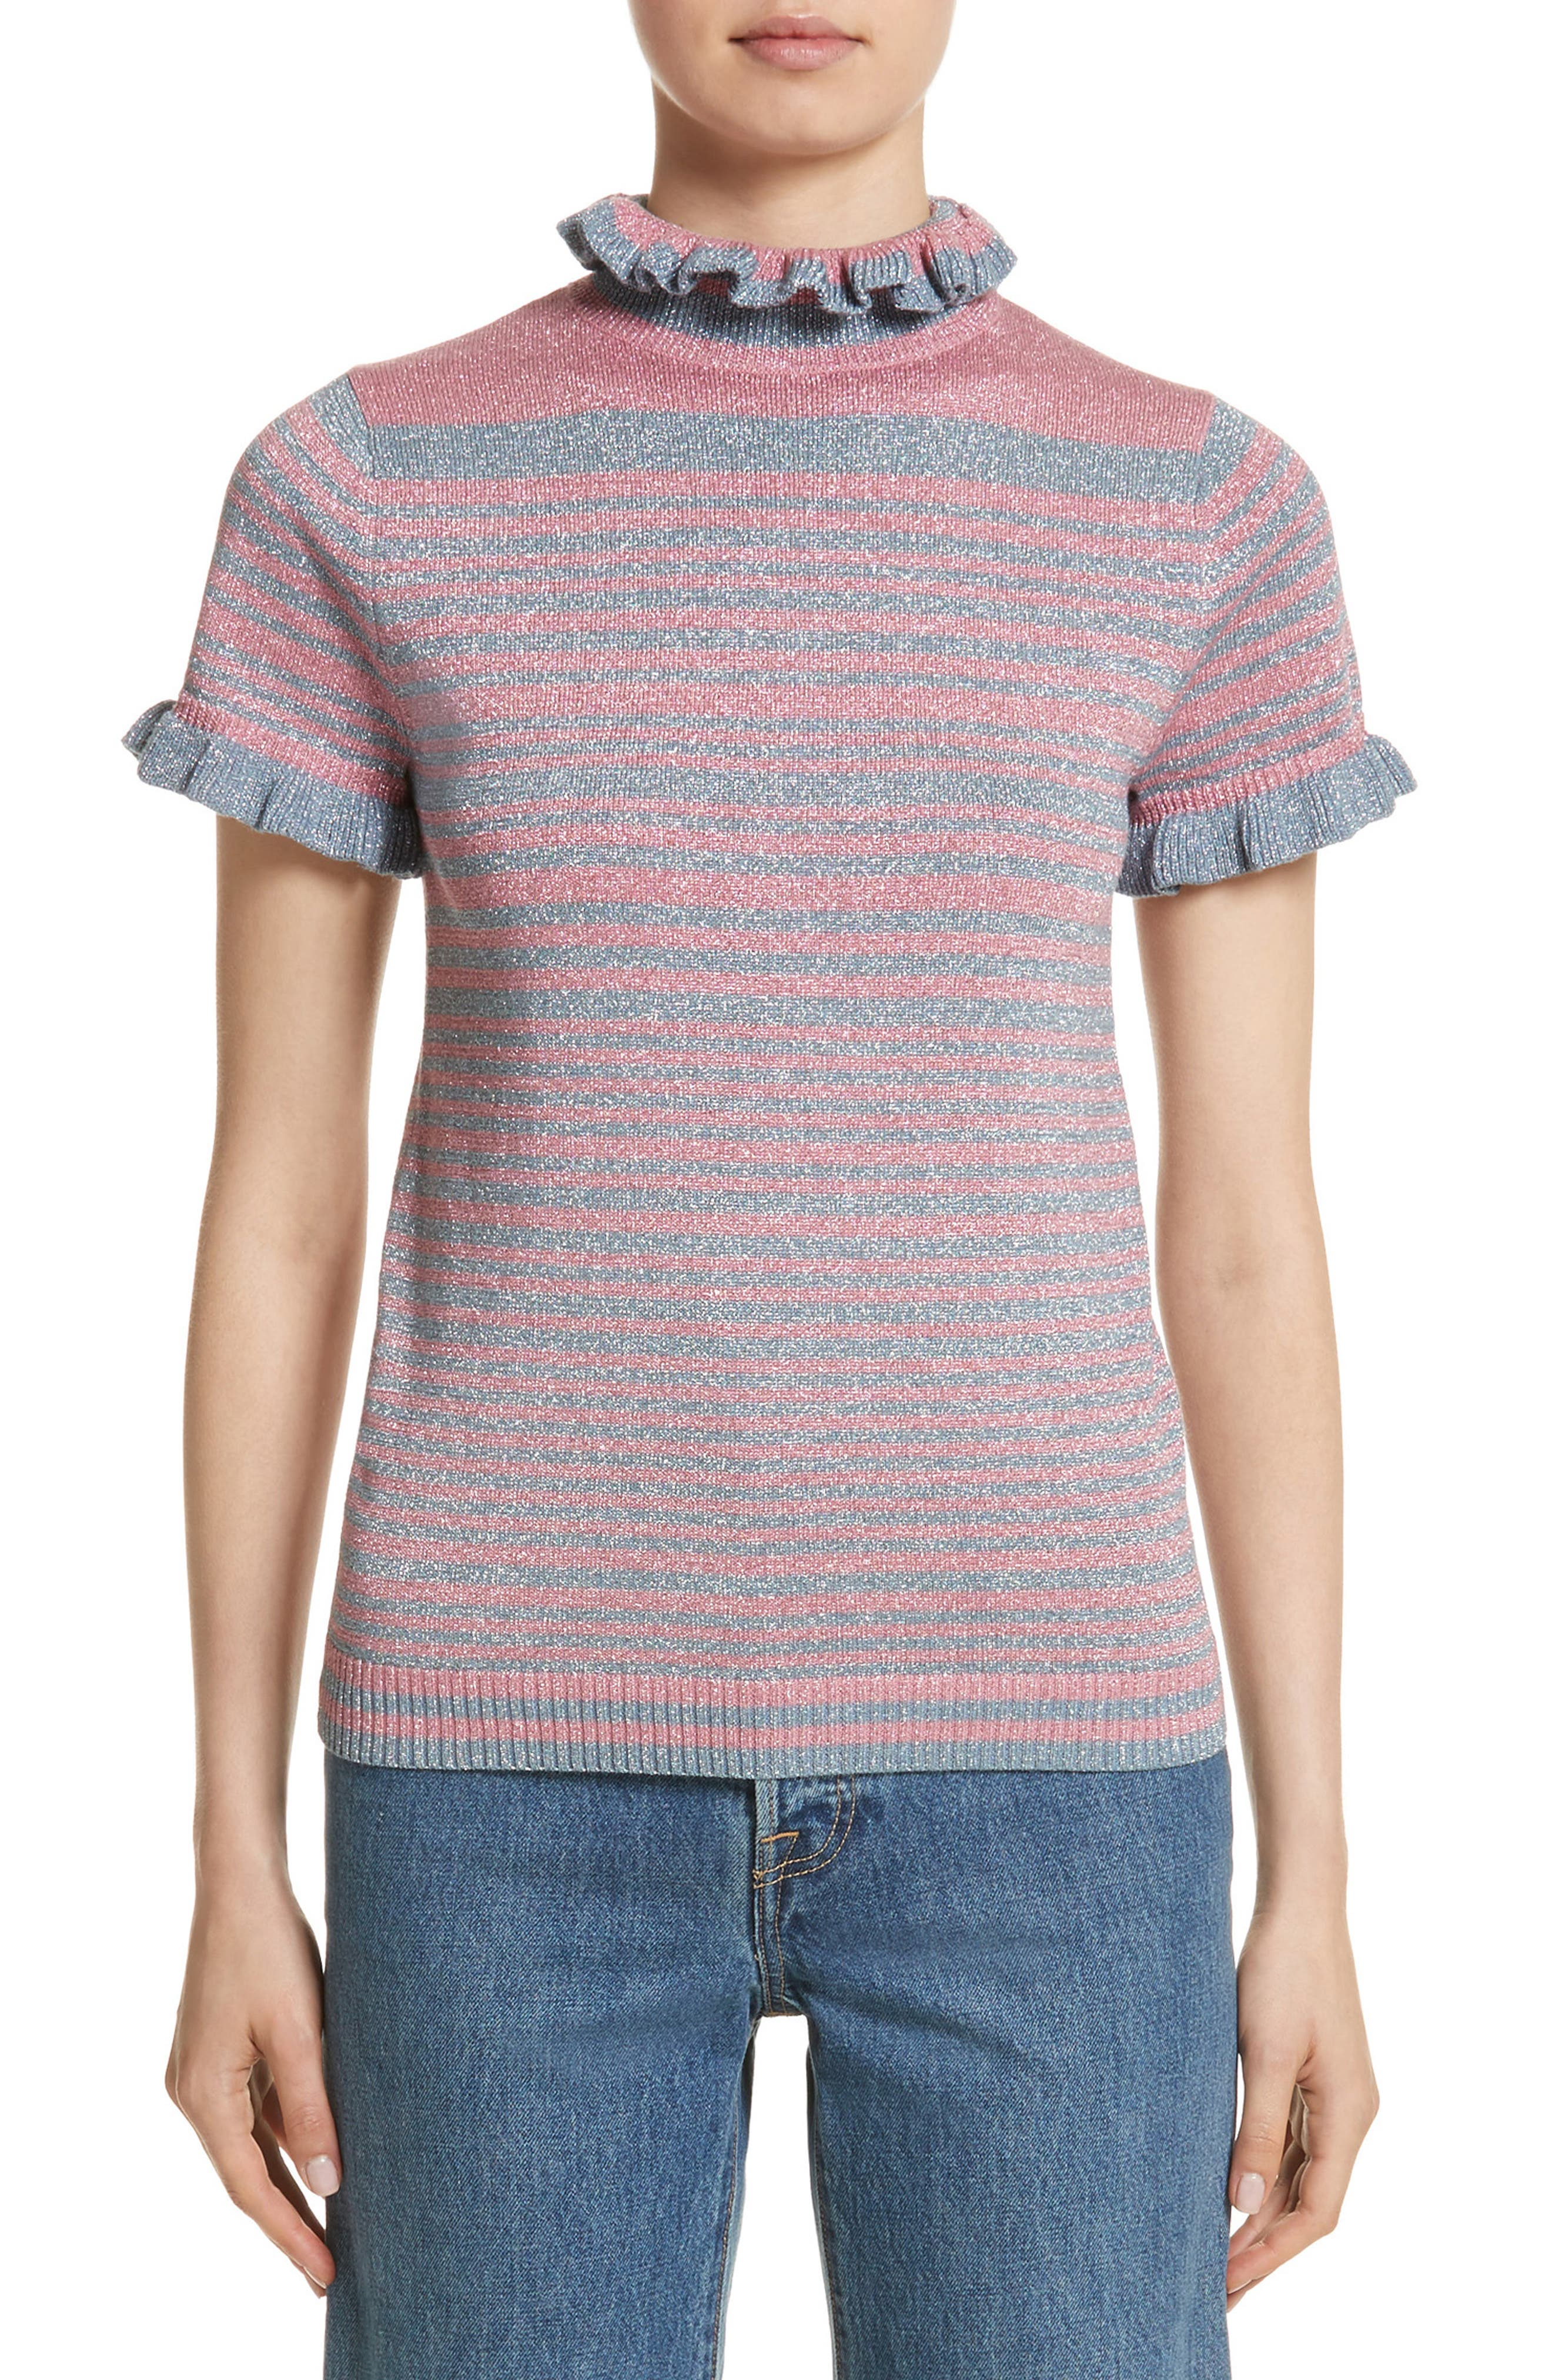 Joan Metallic Stripe Short Sleeve Sweater,                             Main thumbnail 1, color,                             400